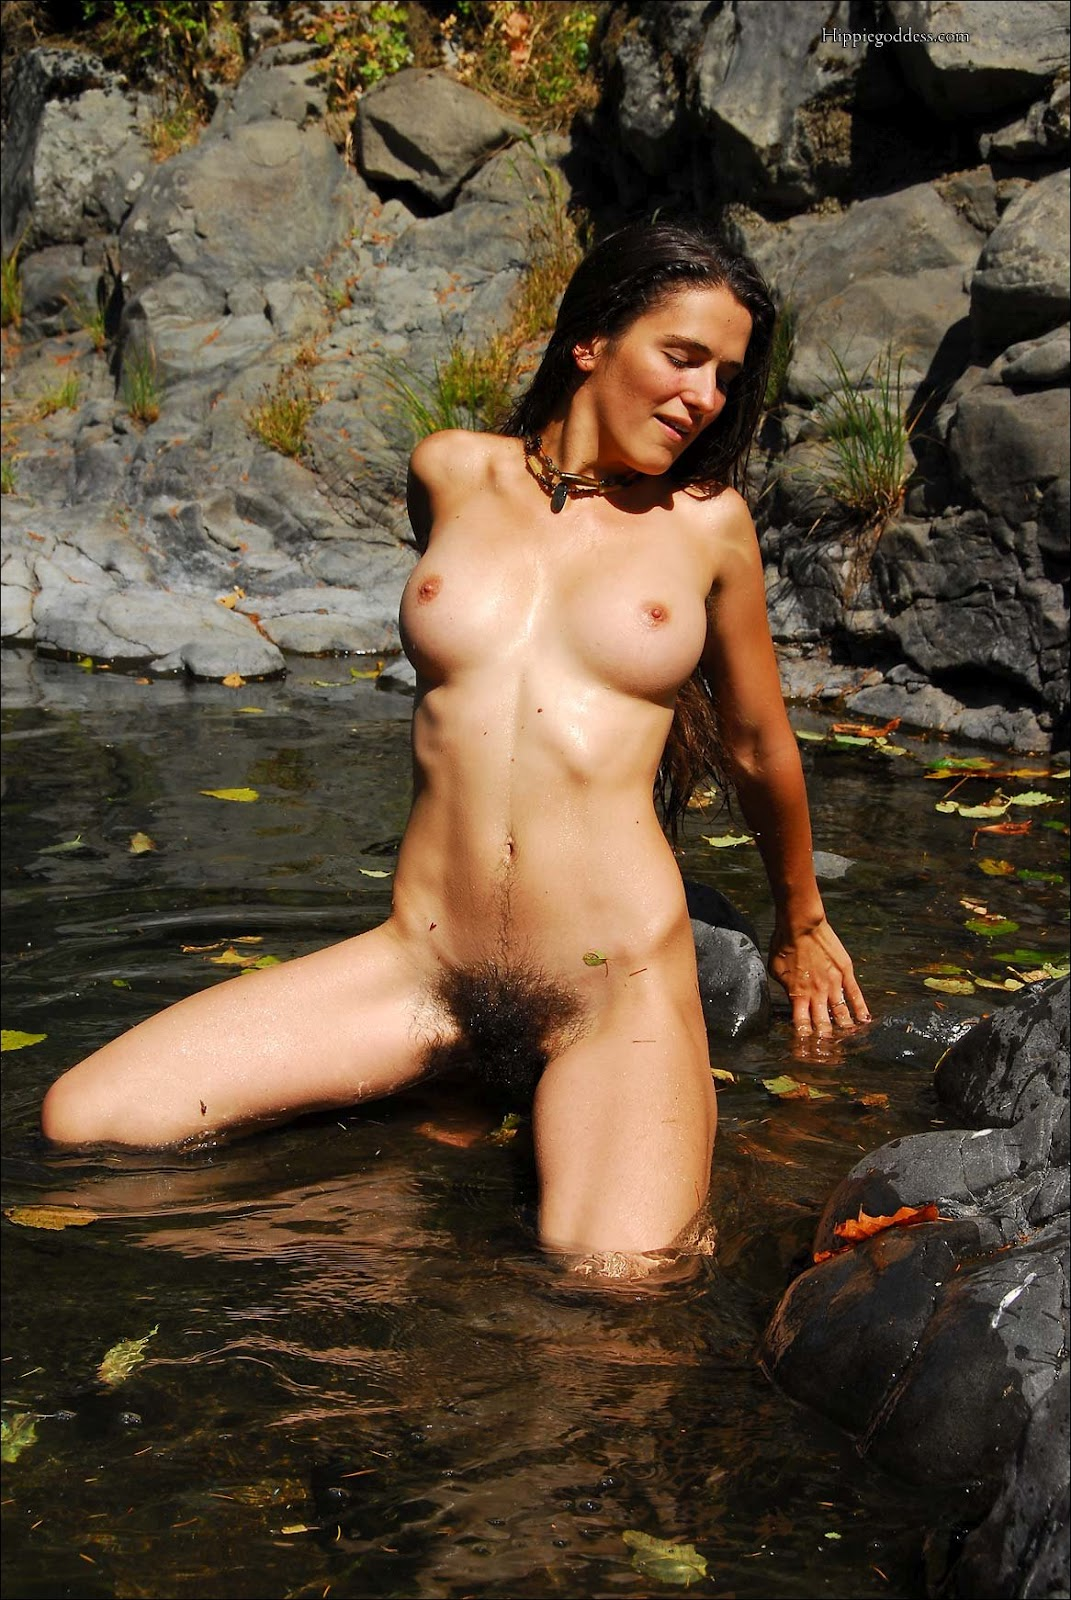 Naked jungle girl peeing